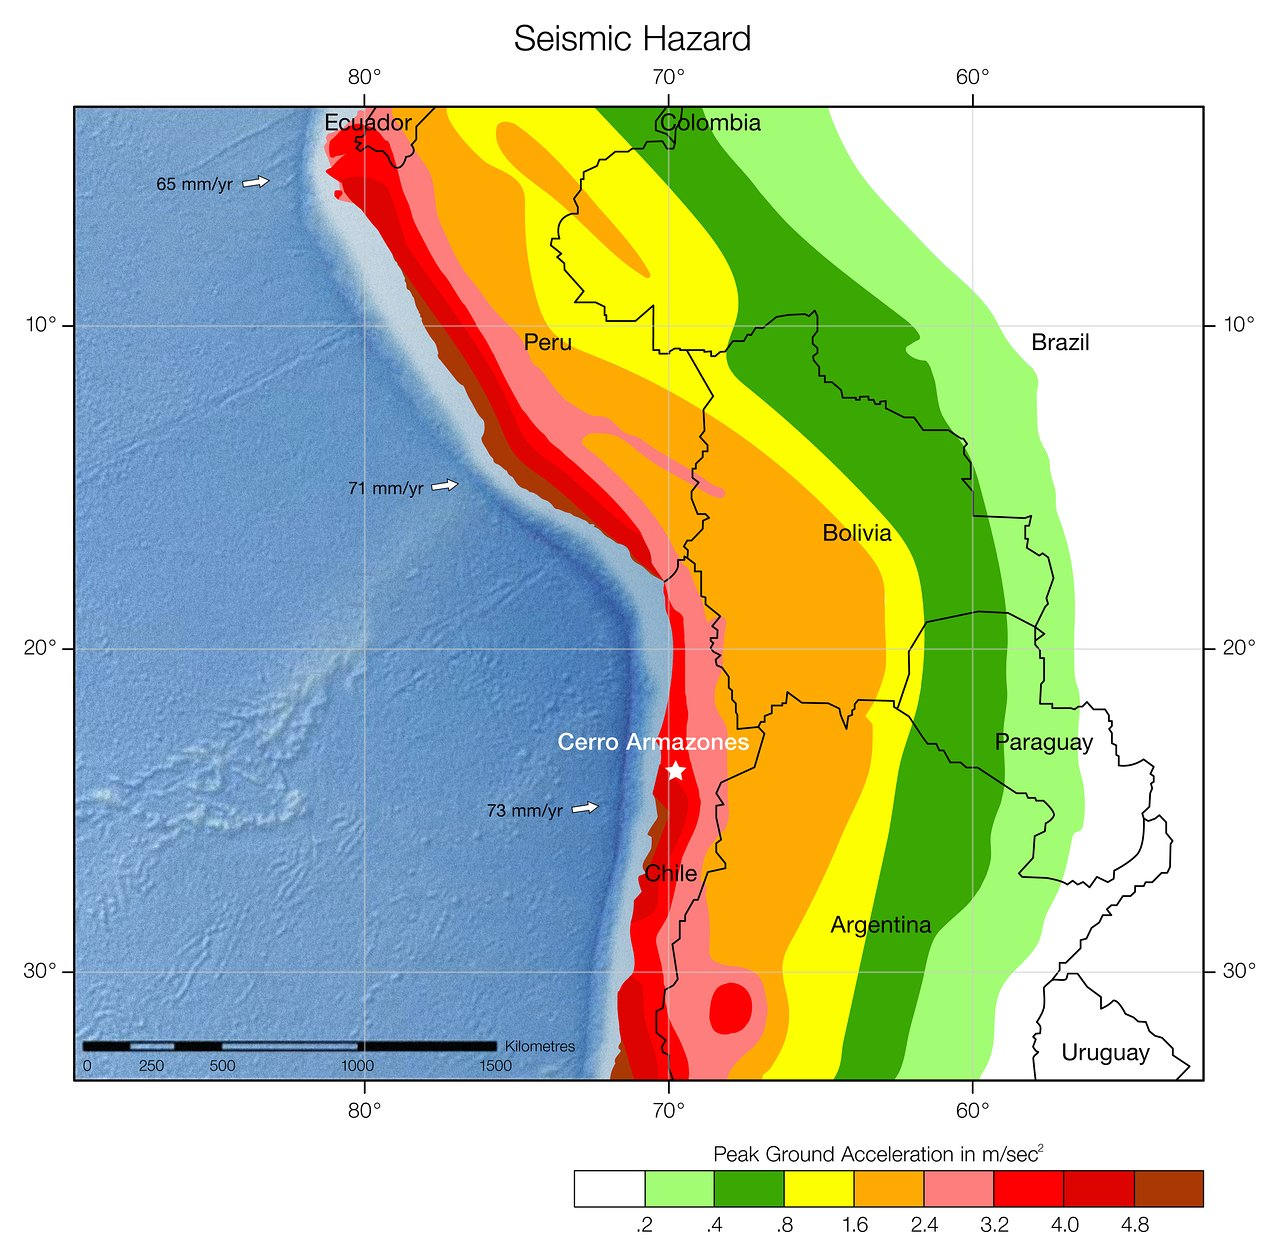 Seismic hazard in Chile